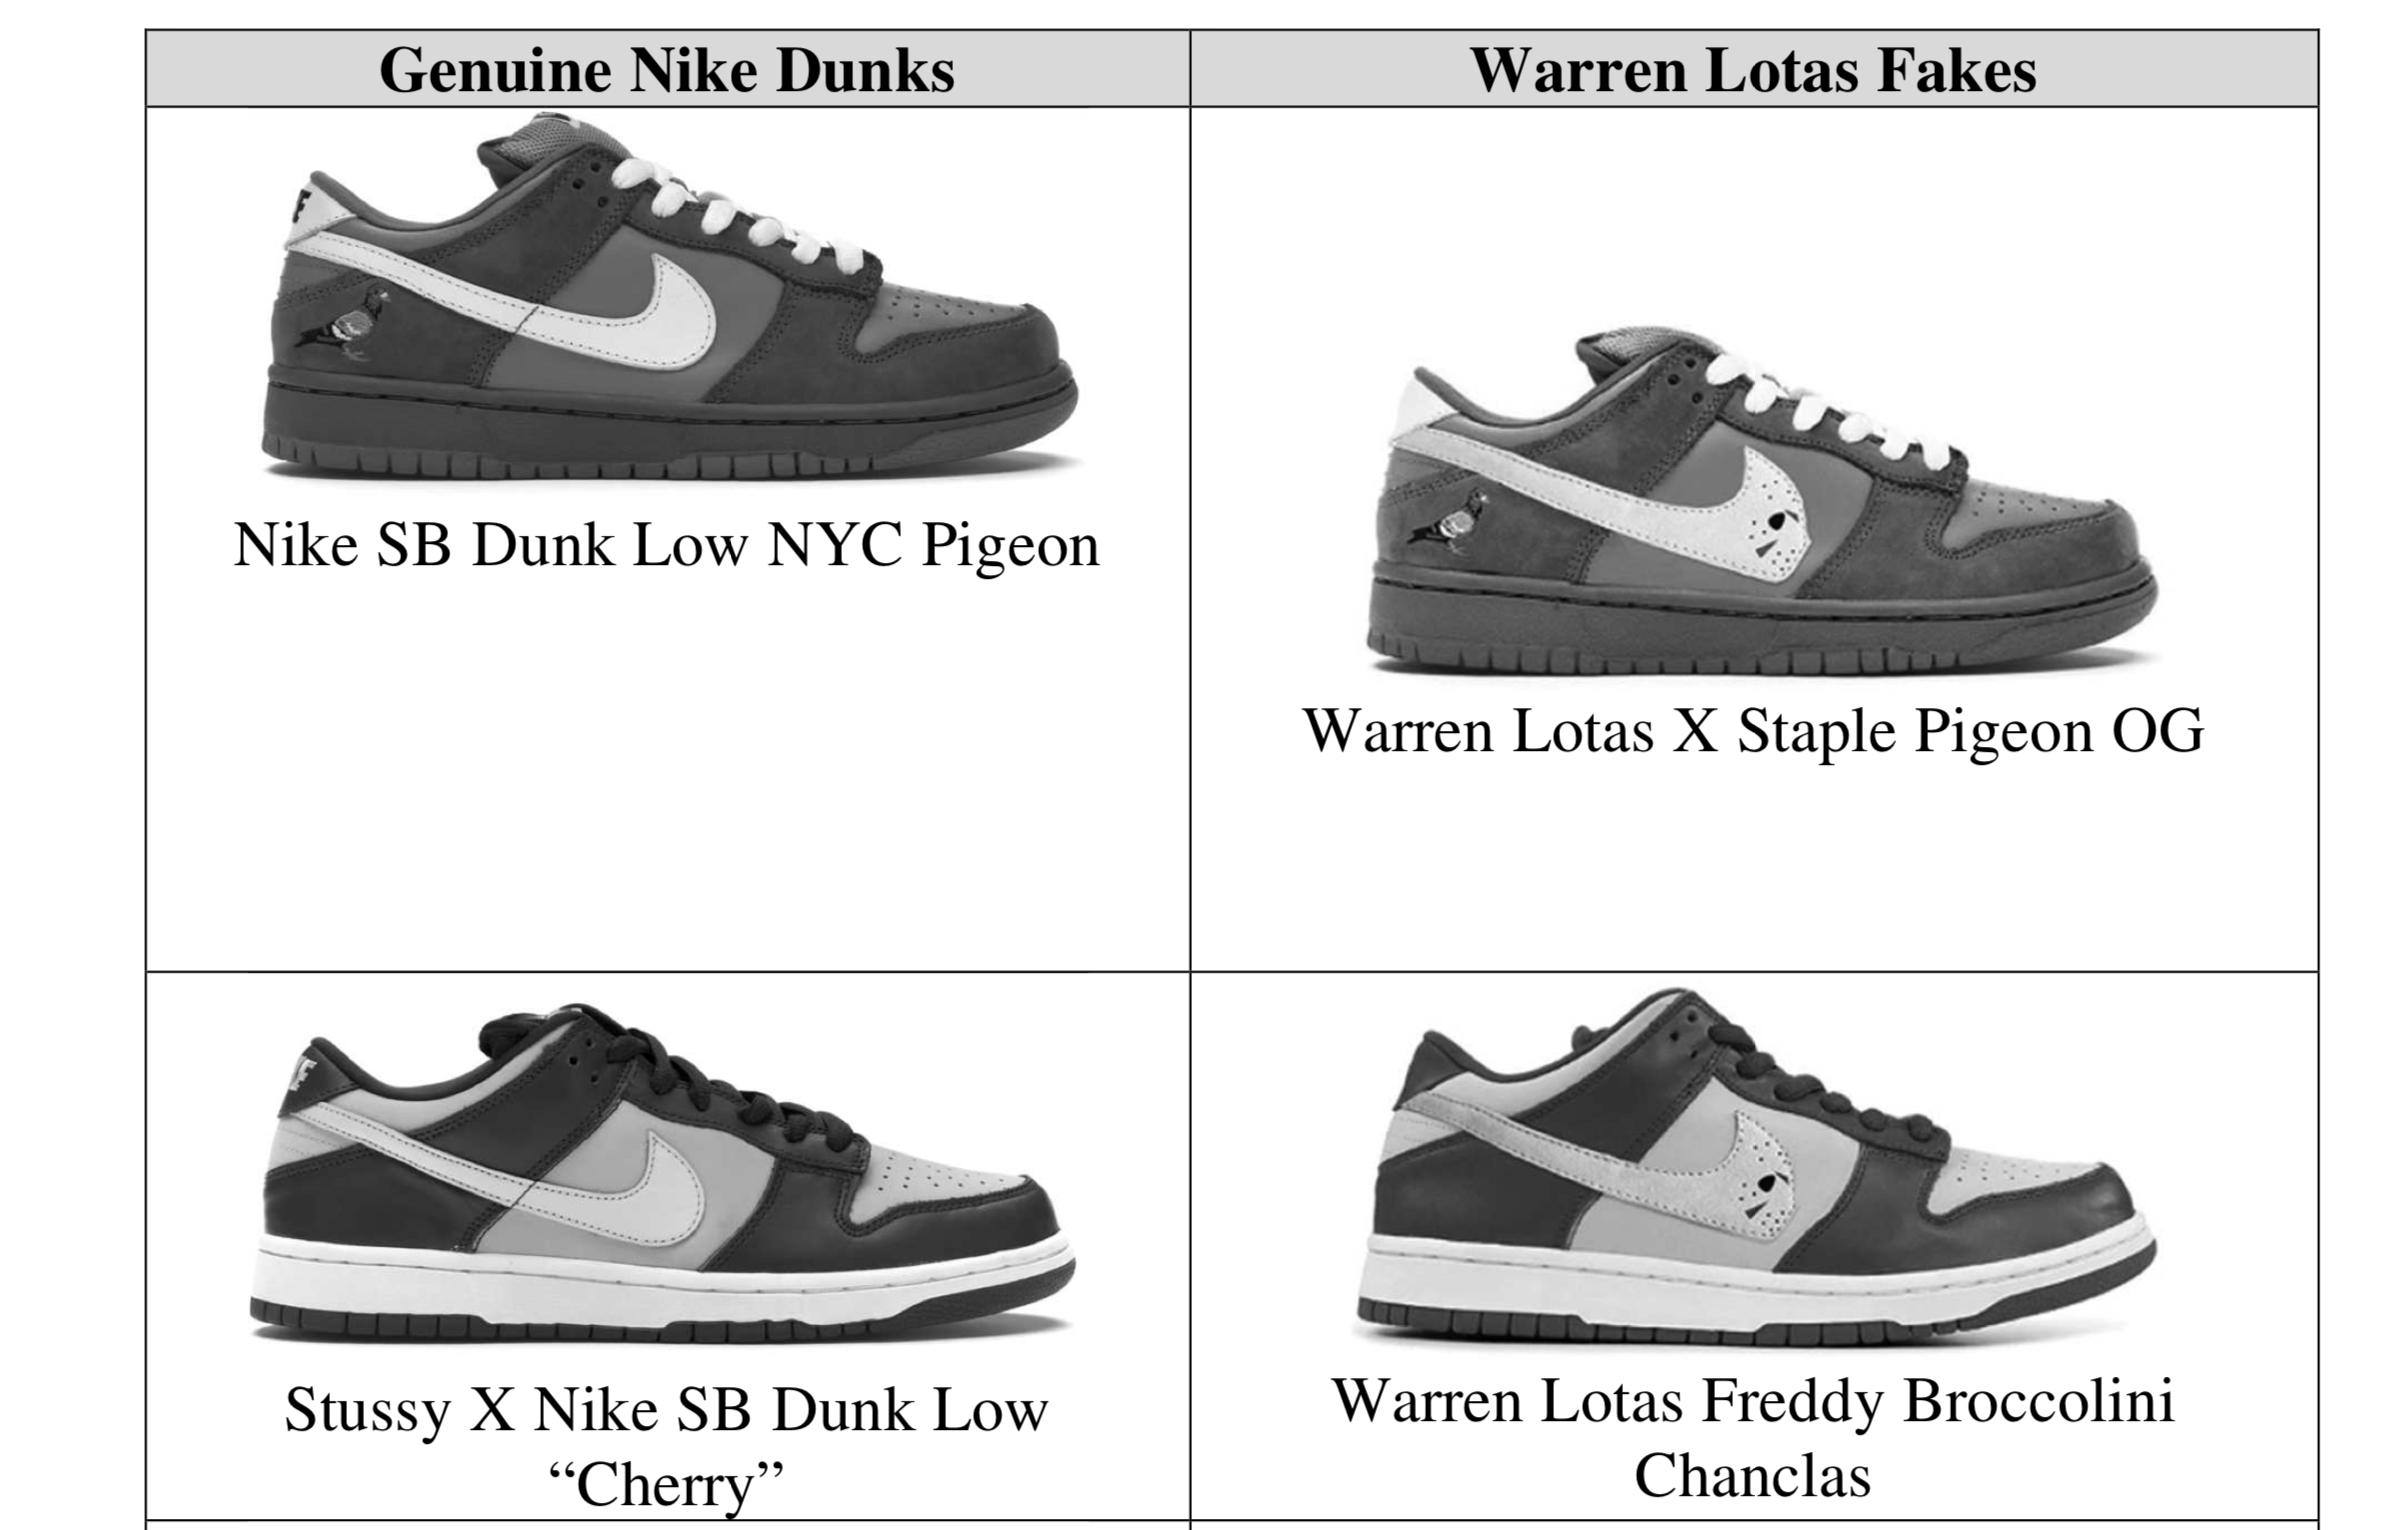 Nike sues Warren Lotas Nike Dunks